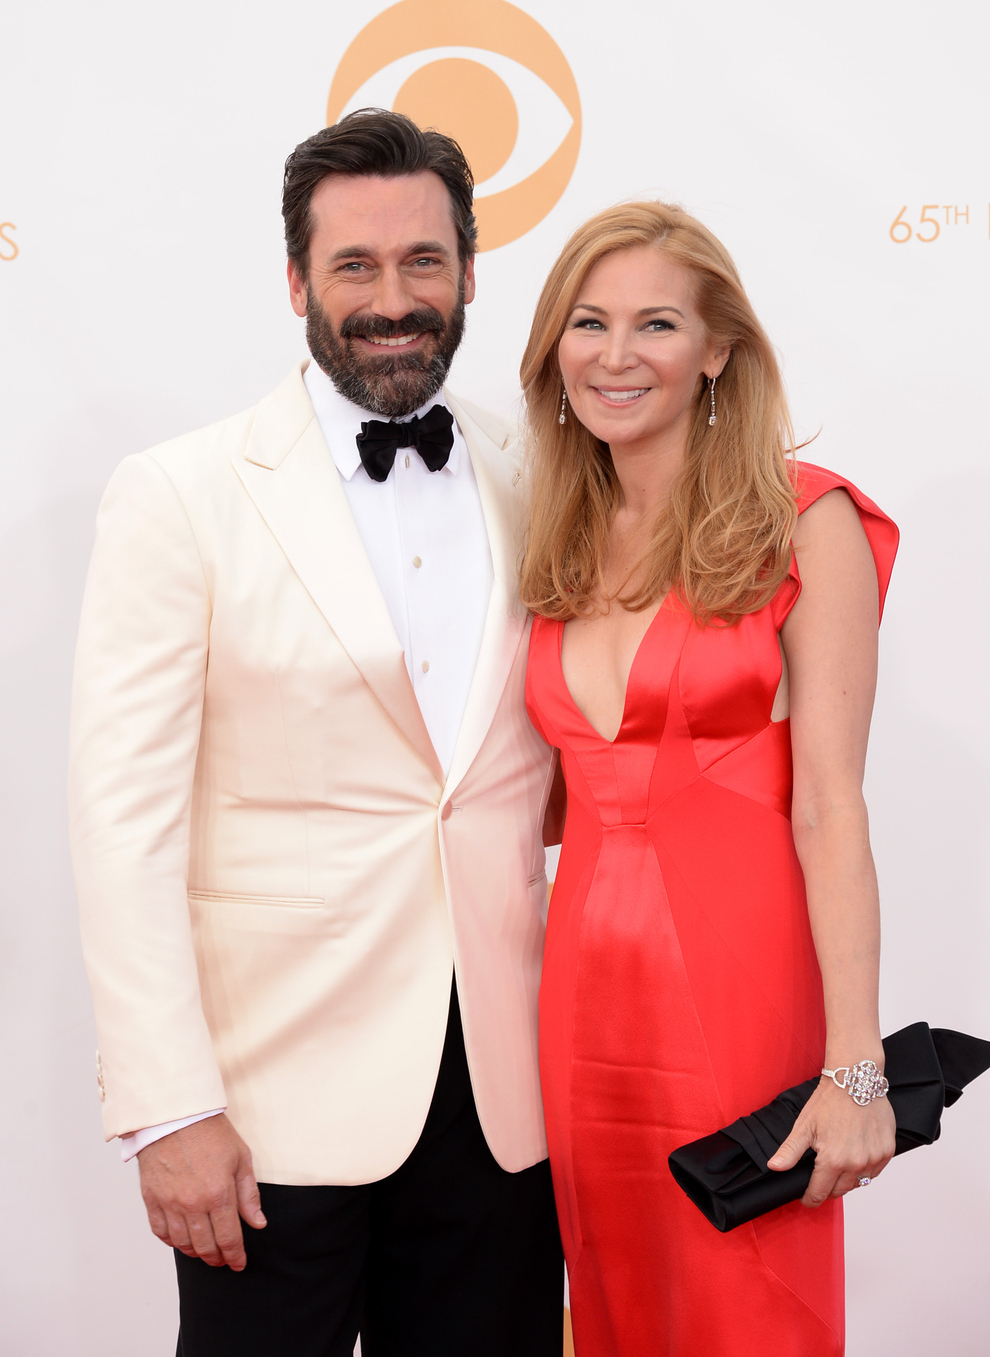 Jon Hamm's Beard Deserves Its Own Emmy